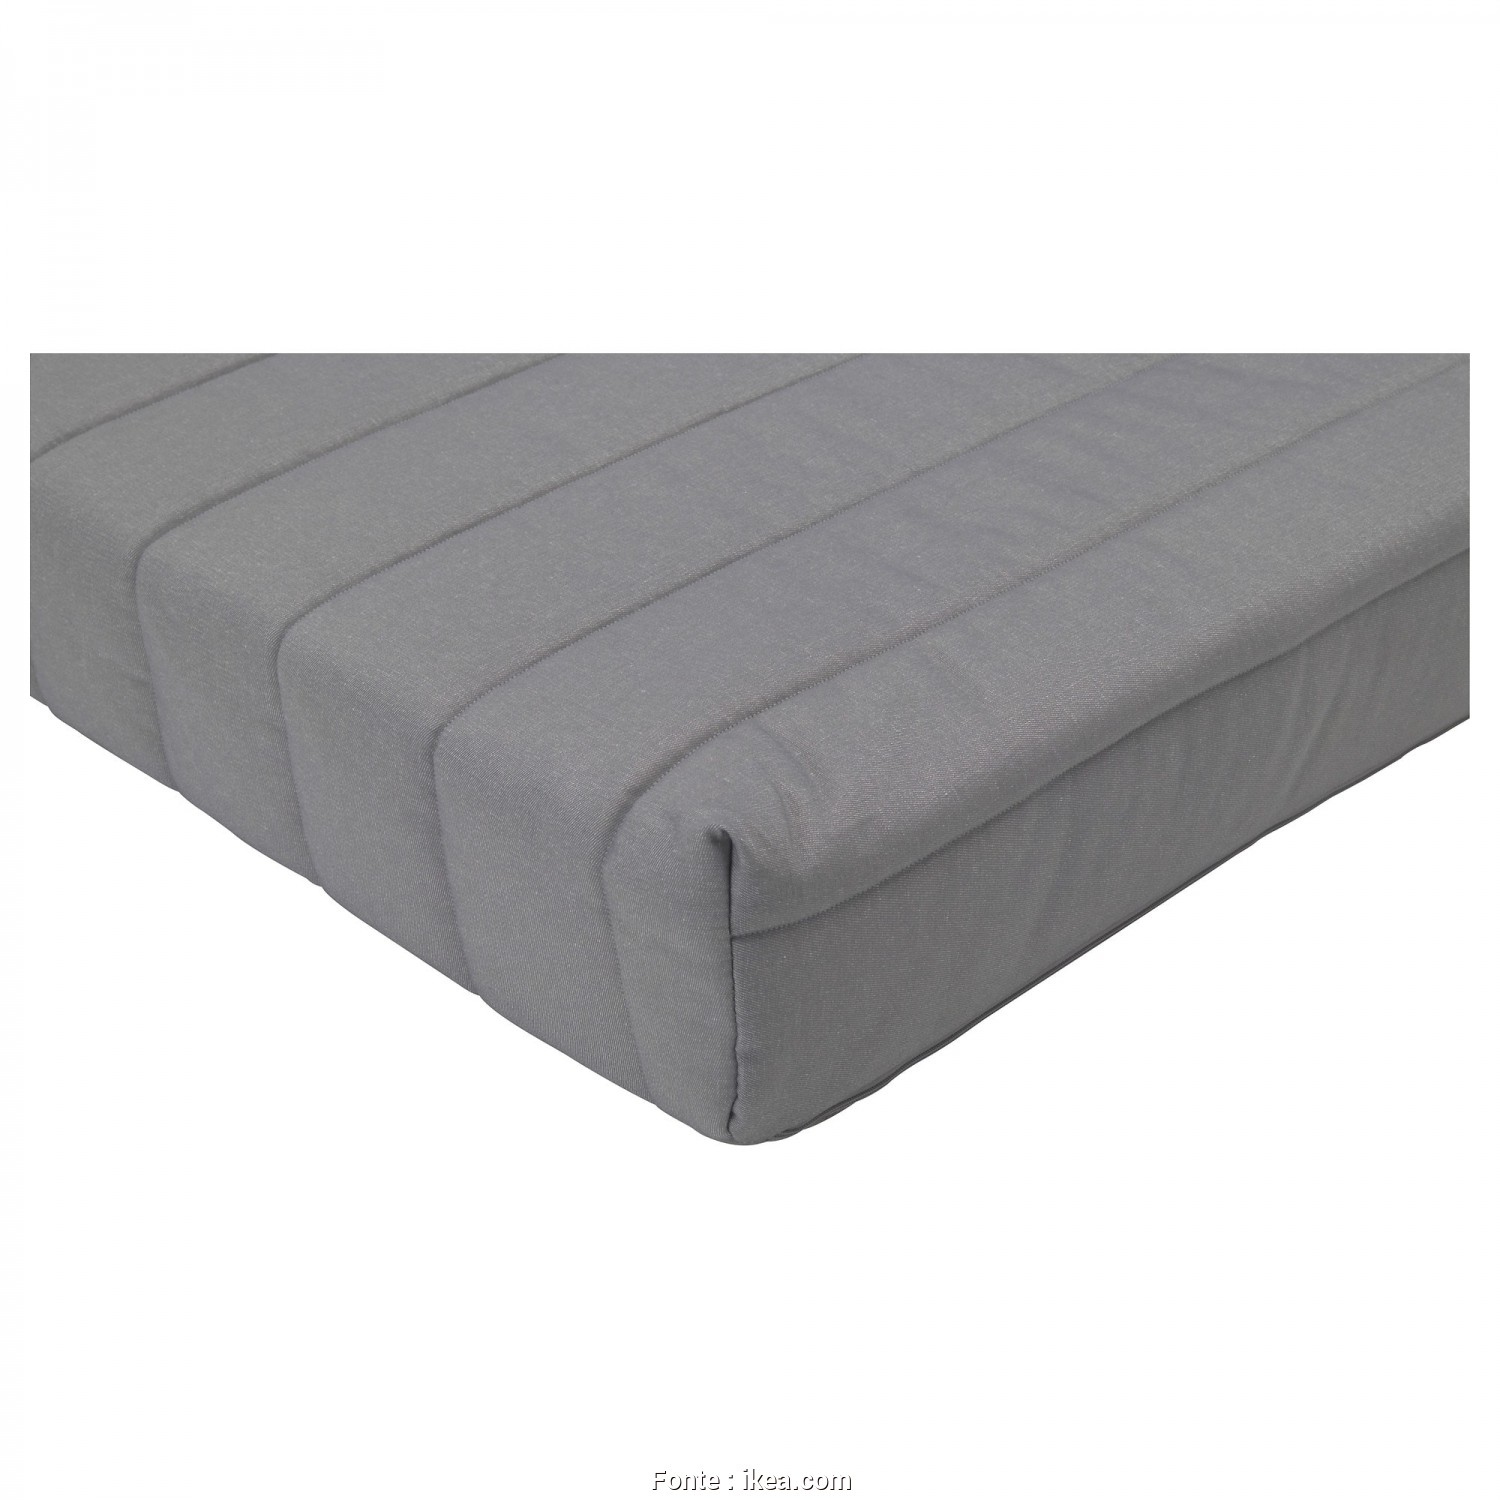 Poltrona Futon Ikea Grankulla, Esclusivo IKEA LYCKSELE LÖVÅS Mattress A Simple, Firm Foam Mattress, Use Every Night